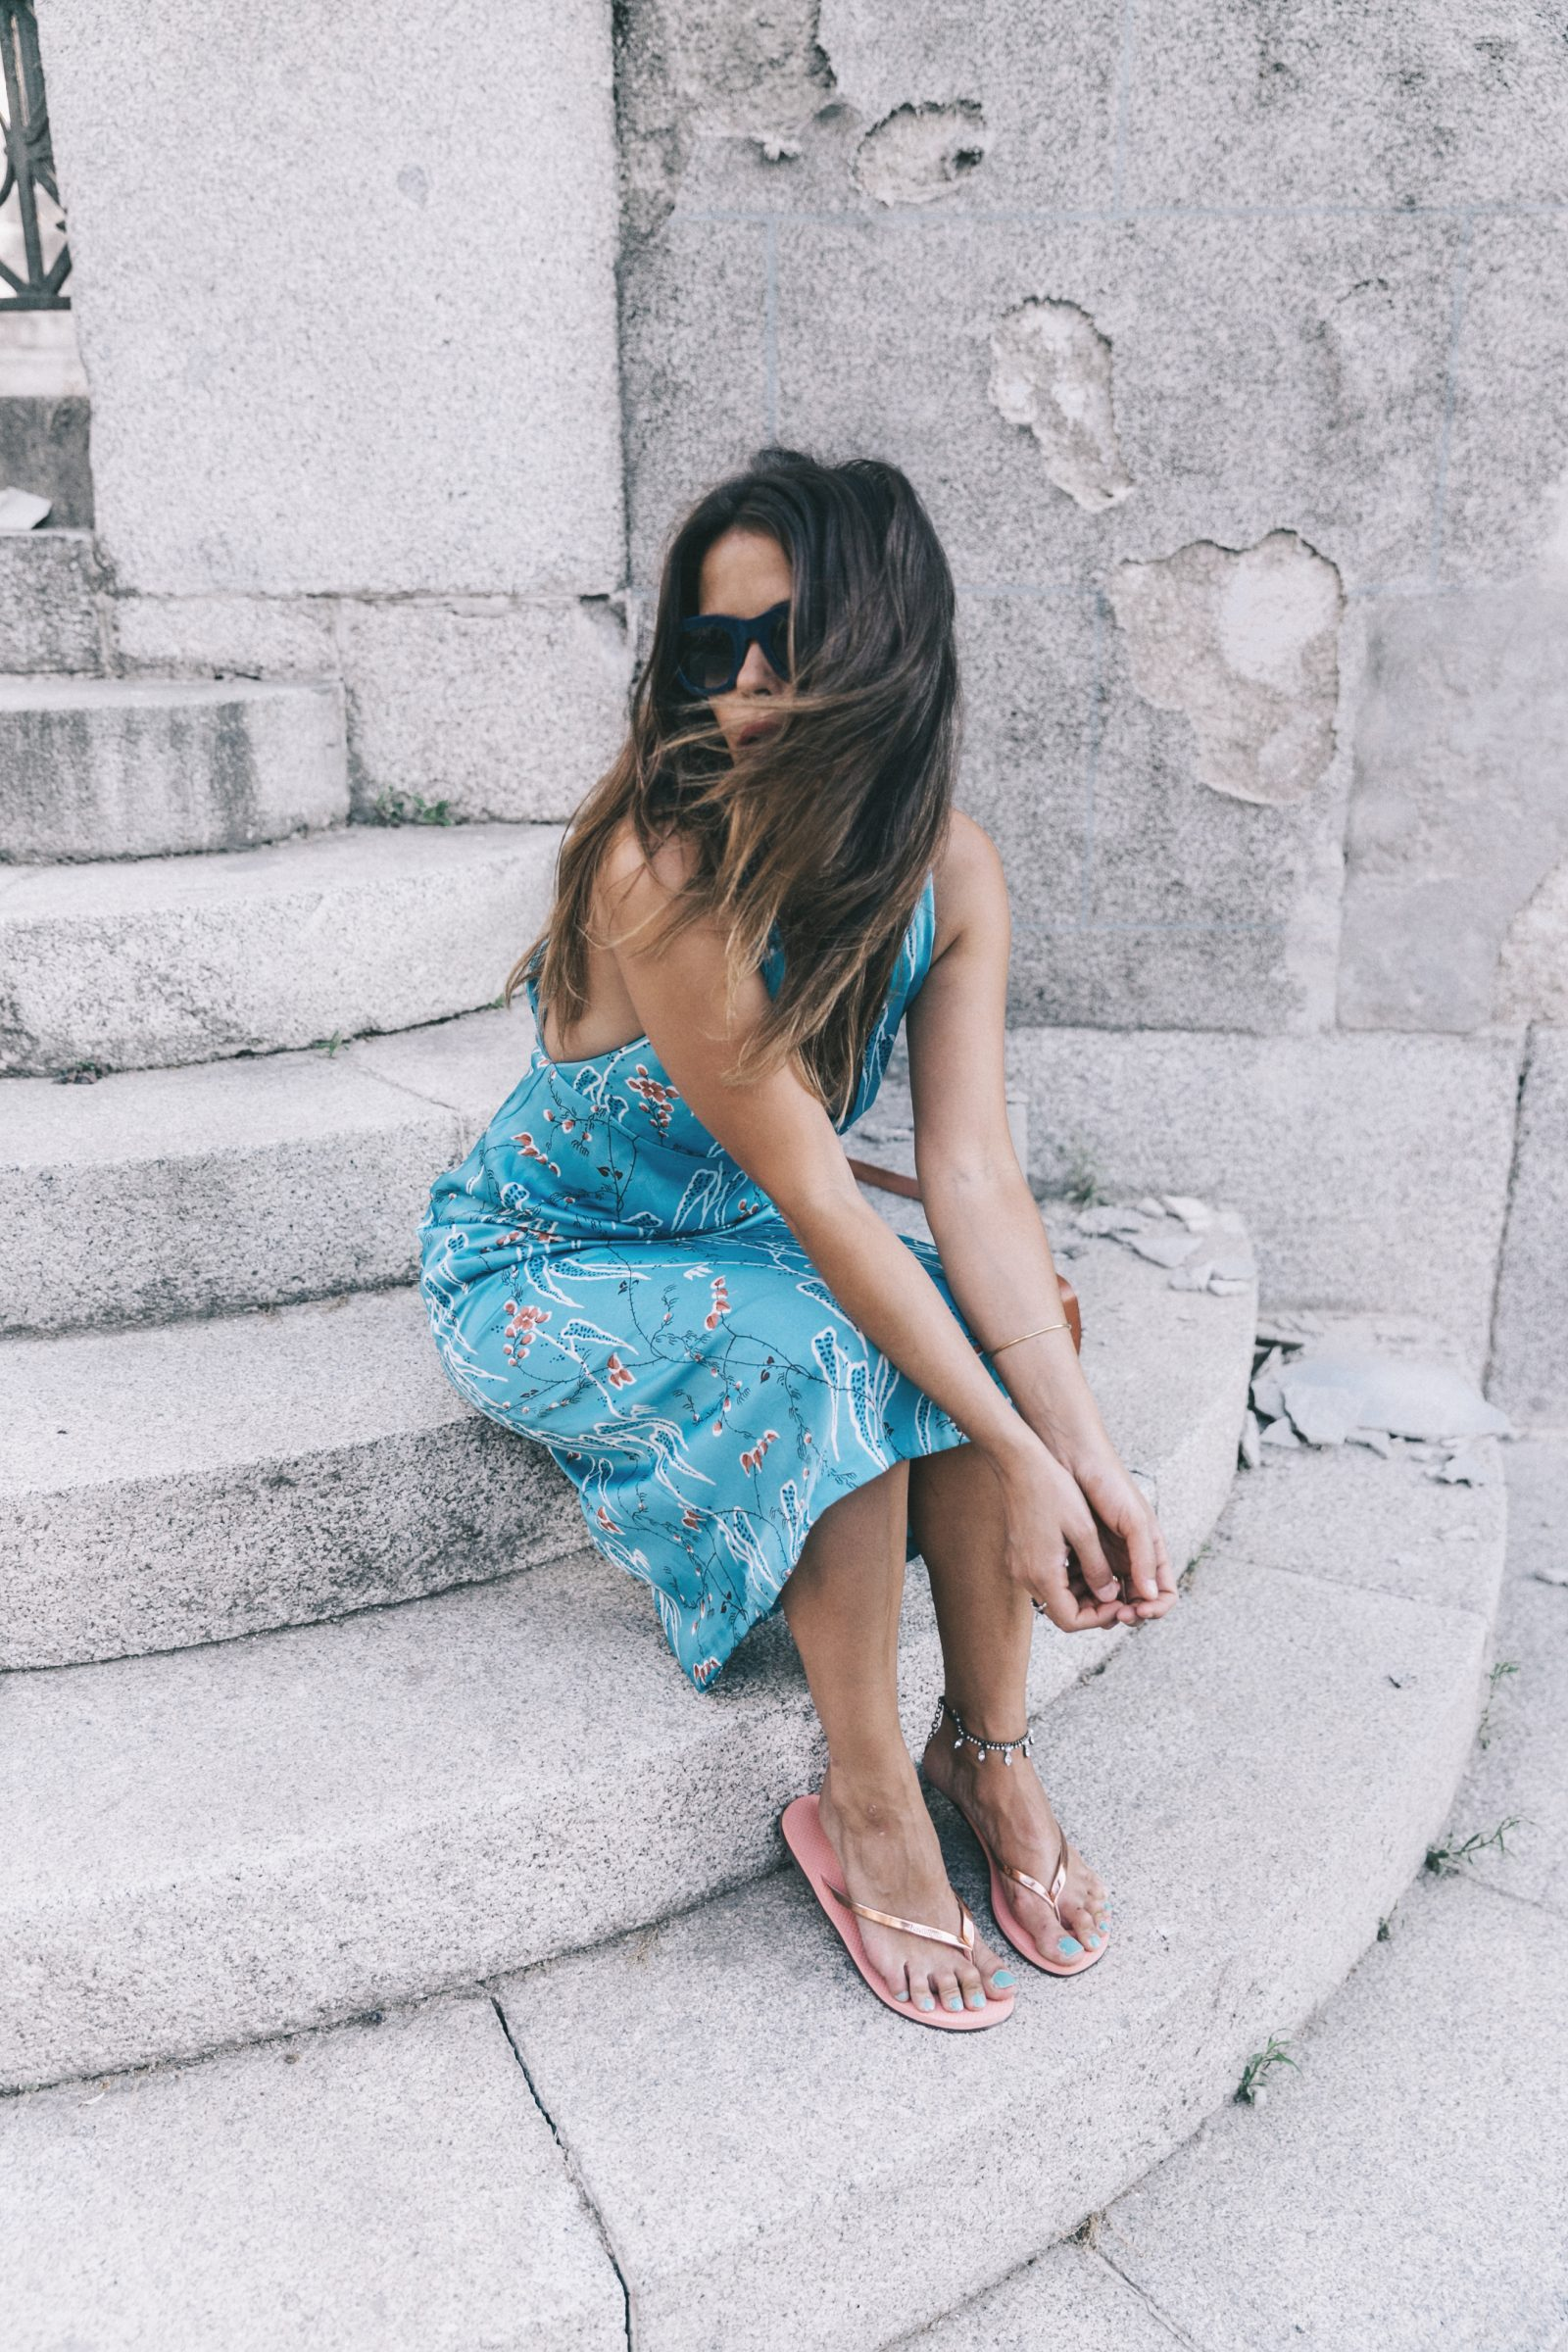 Outfit-Floral_Dress-Havaianas_Sandals-Summer-Sezane_Bag-Street_Style-Celine_Sunglasses-Collage_Vintage-4